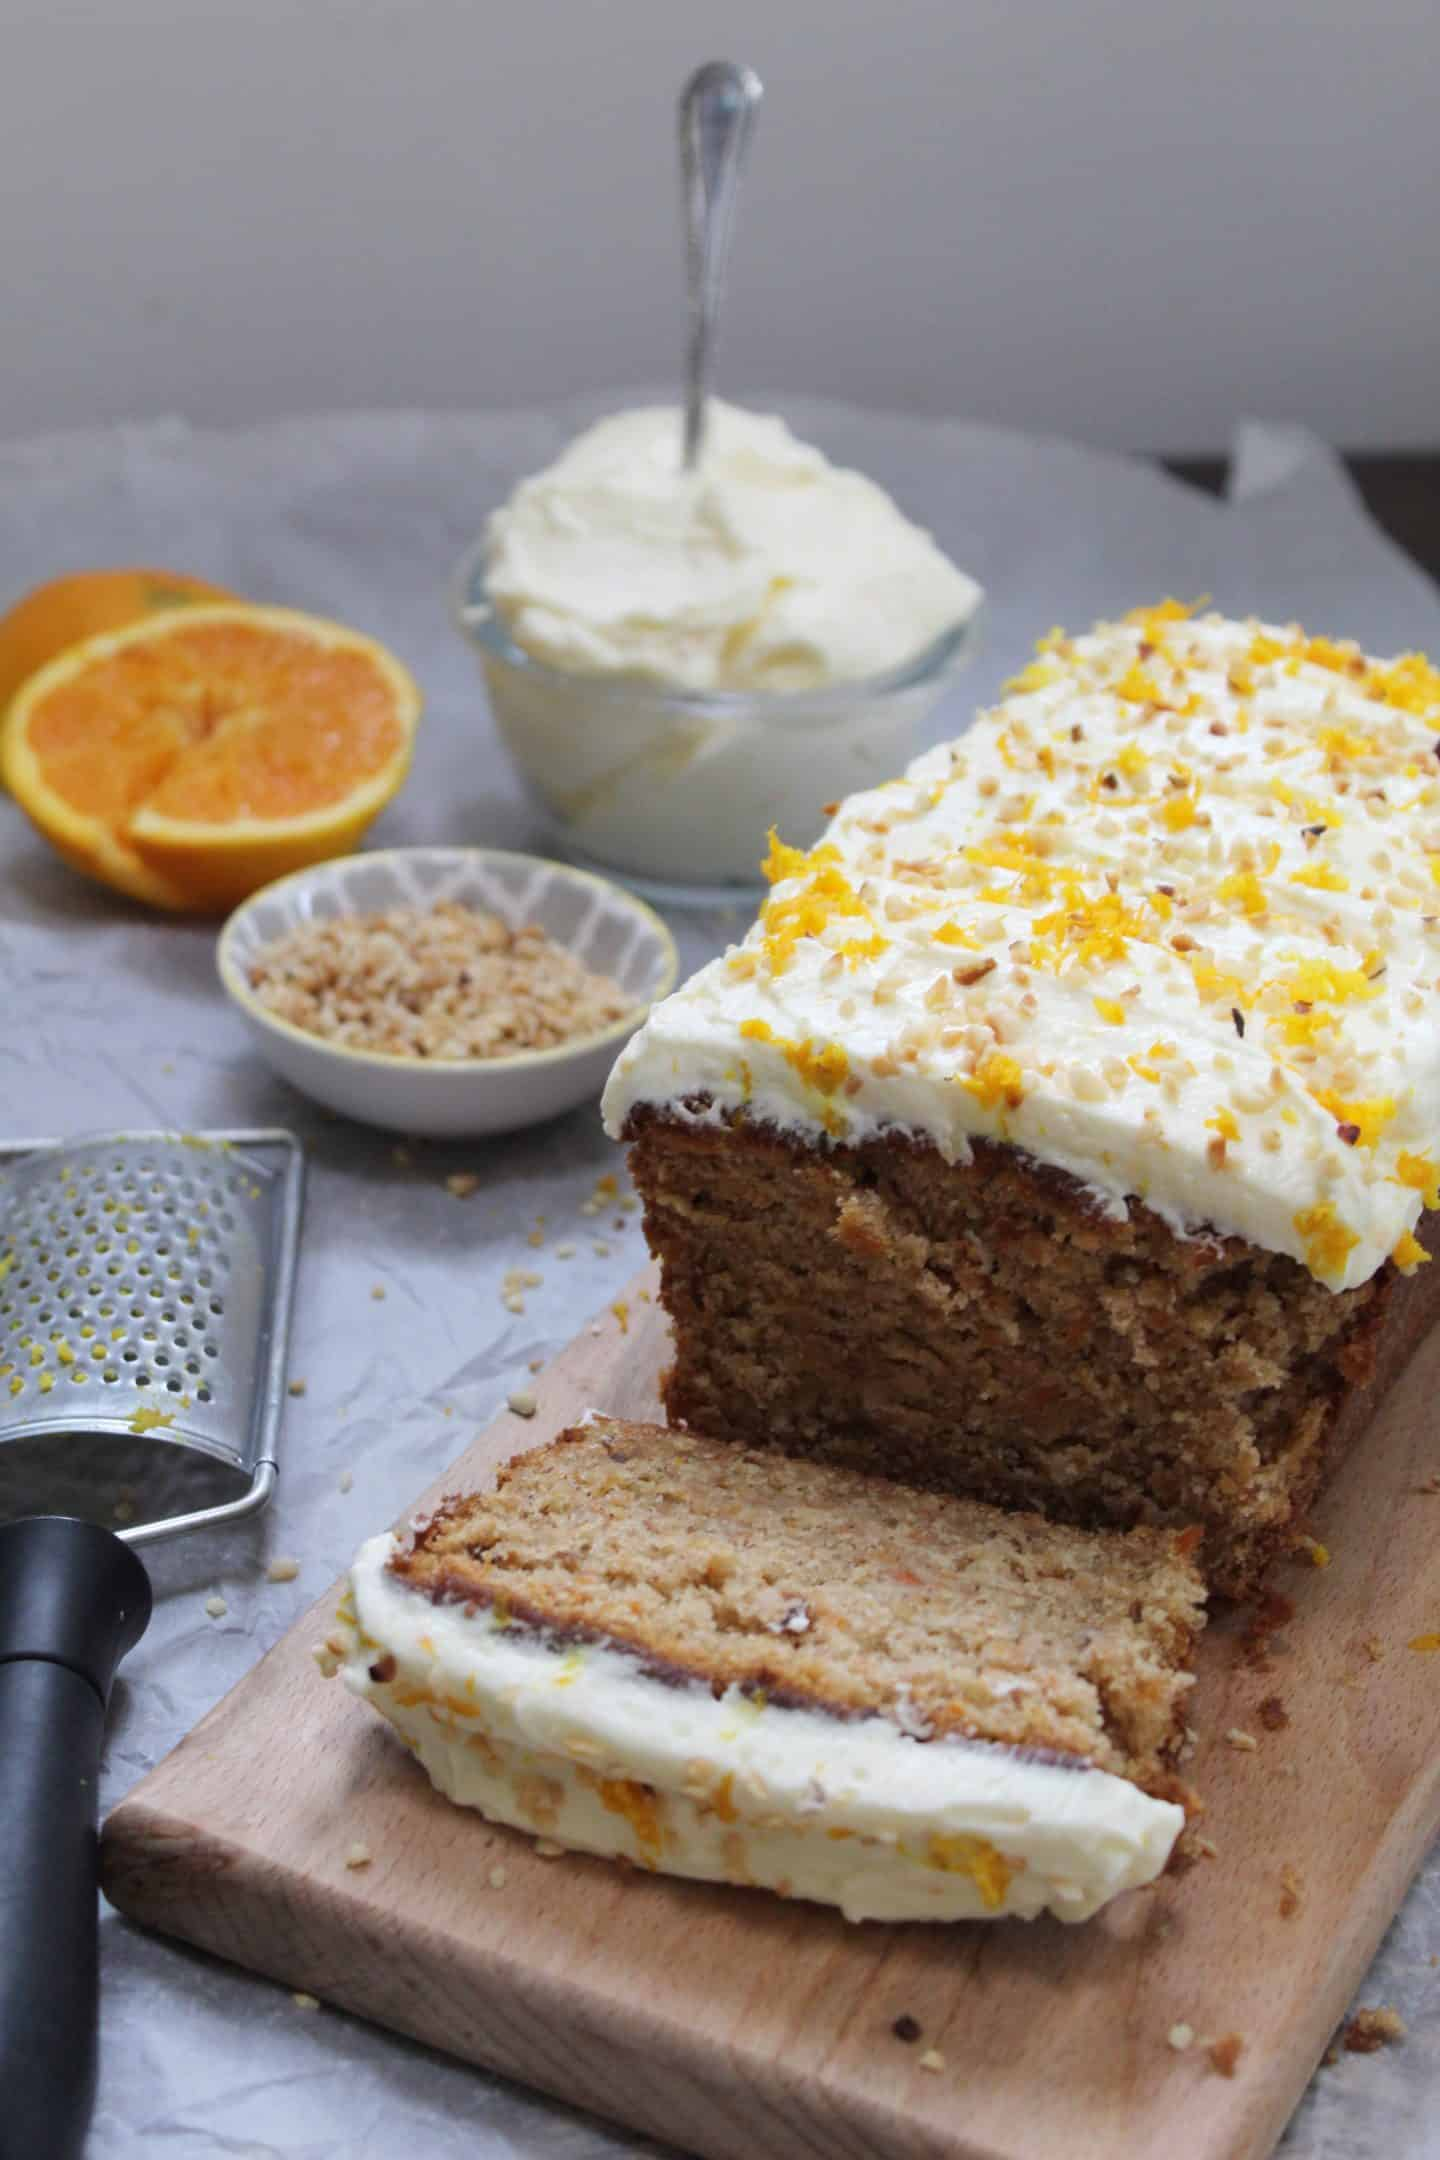 gluten free carrot cake recipe with hazelnut and orange